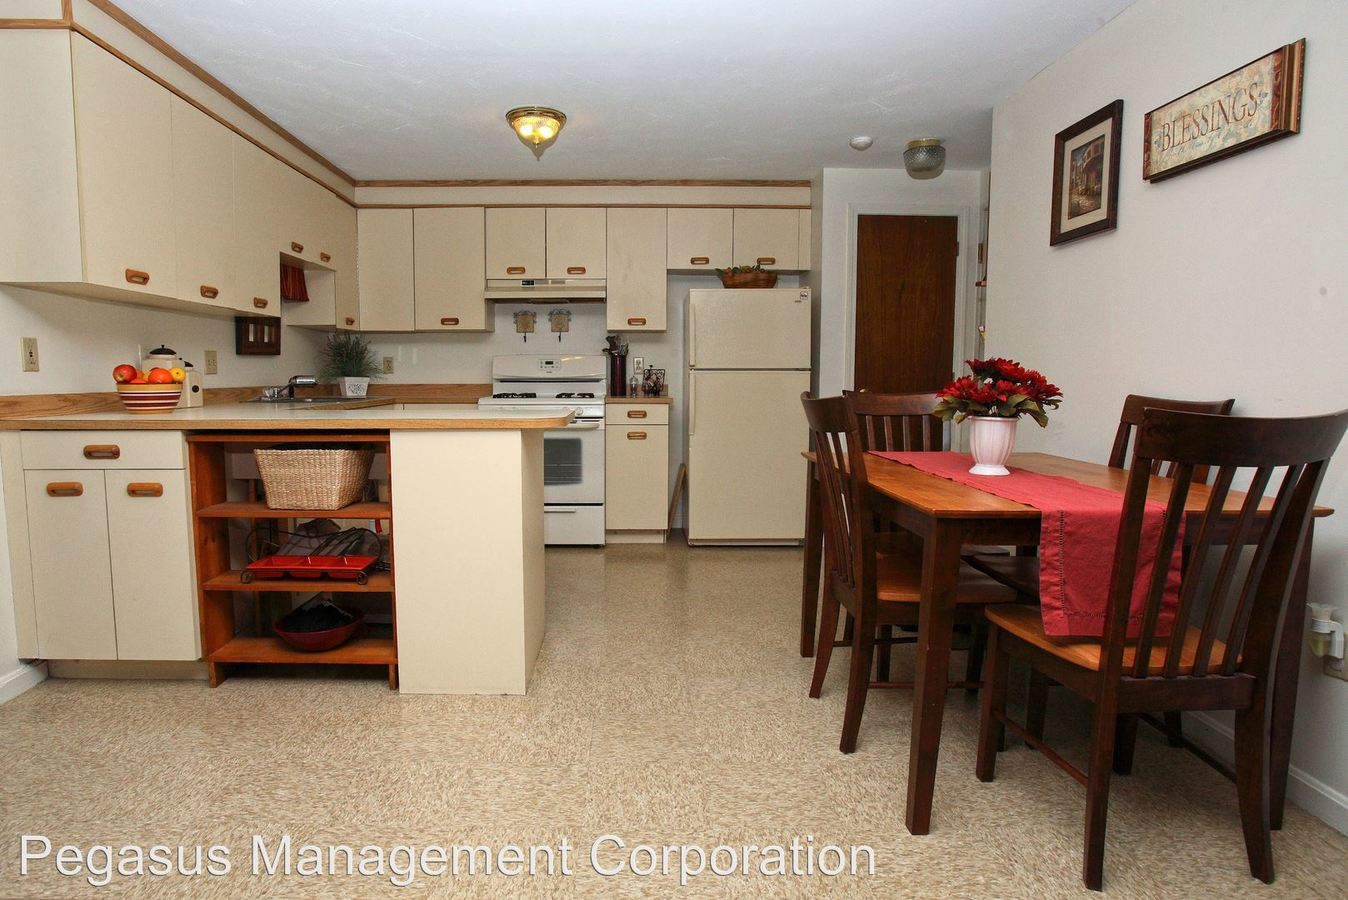 2 Bedrooms 1 Bathroom Apartment for rent at 310-312 Route 27 in Raymond, NH